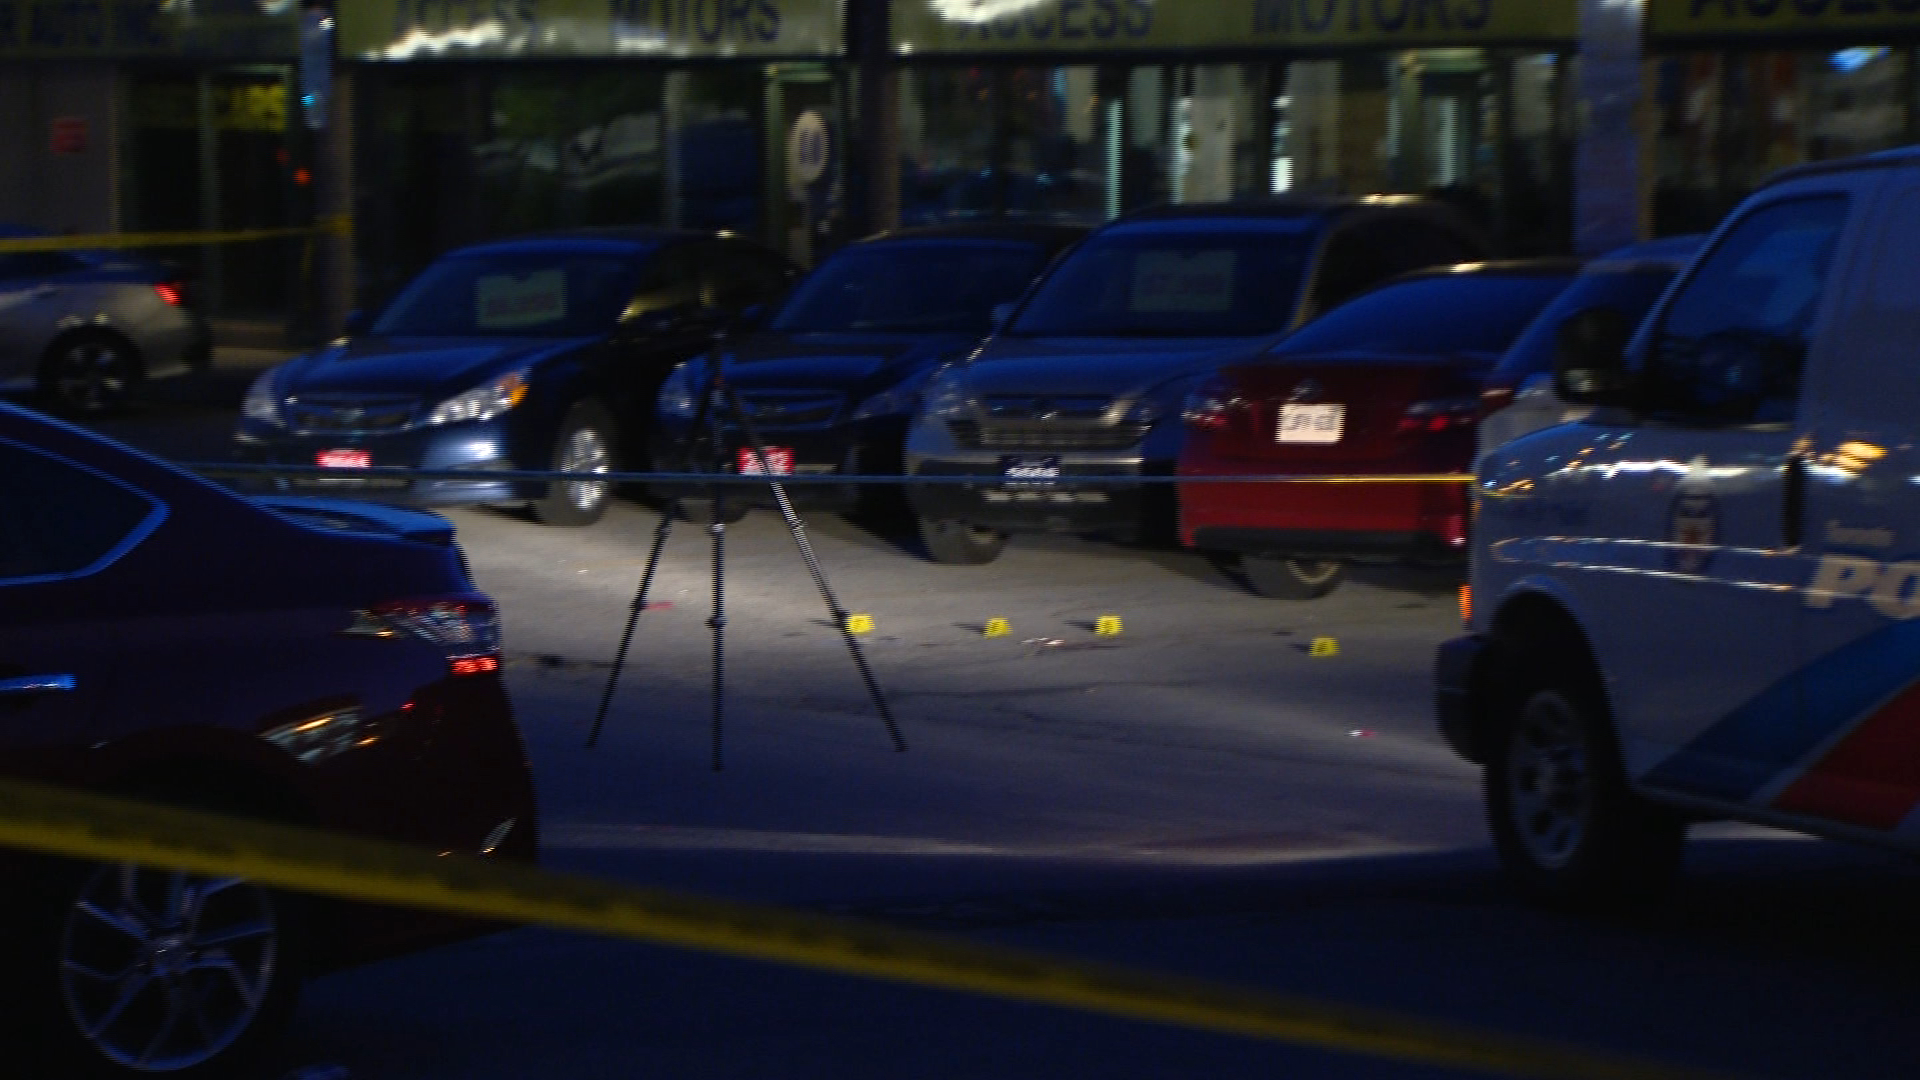 13 victims after nearly a dozen shootings over the weekend: Toronto police